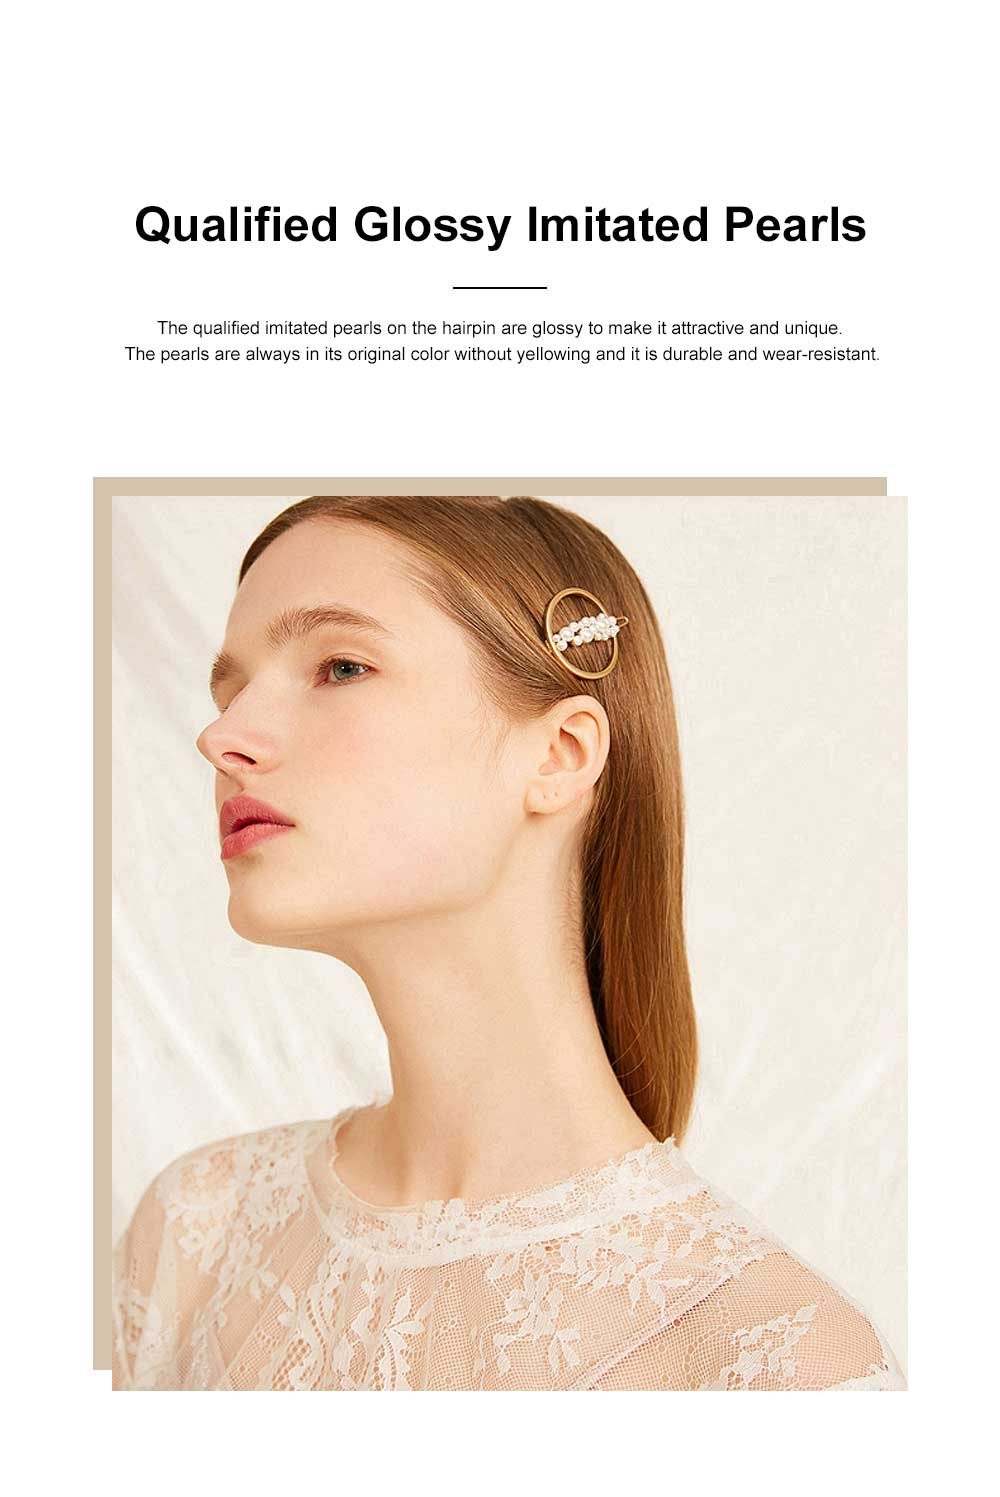 Creative Shape Hairpin Imitated Pearl Alloy Glossy Hair Grip for Girls Gold-plated Hair Accessories Starry Tuck Comb Side Hair Clip 2020 1